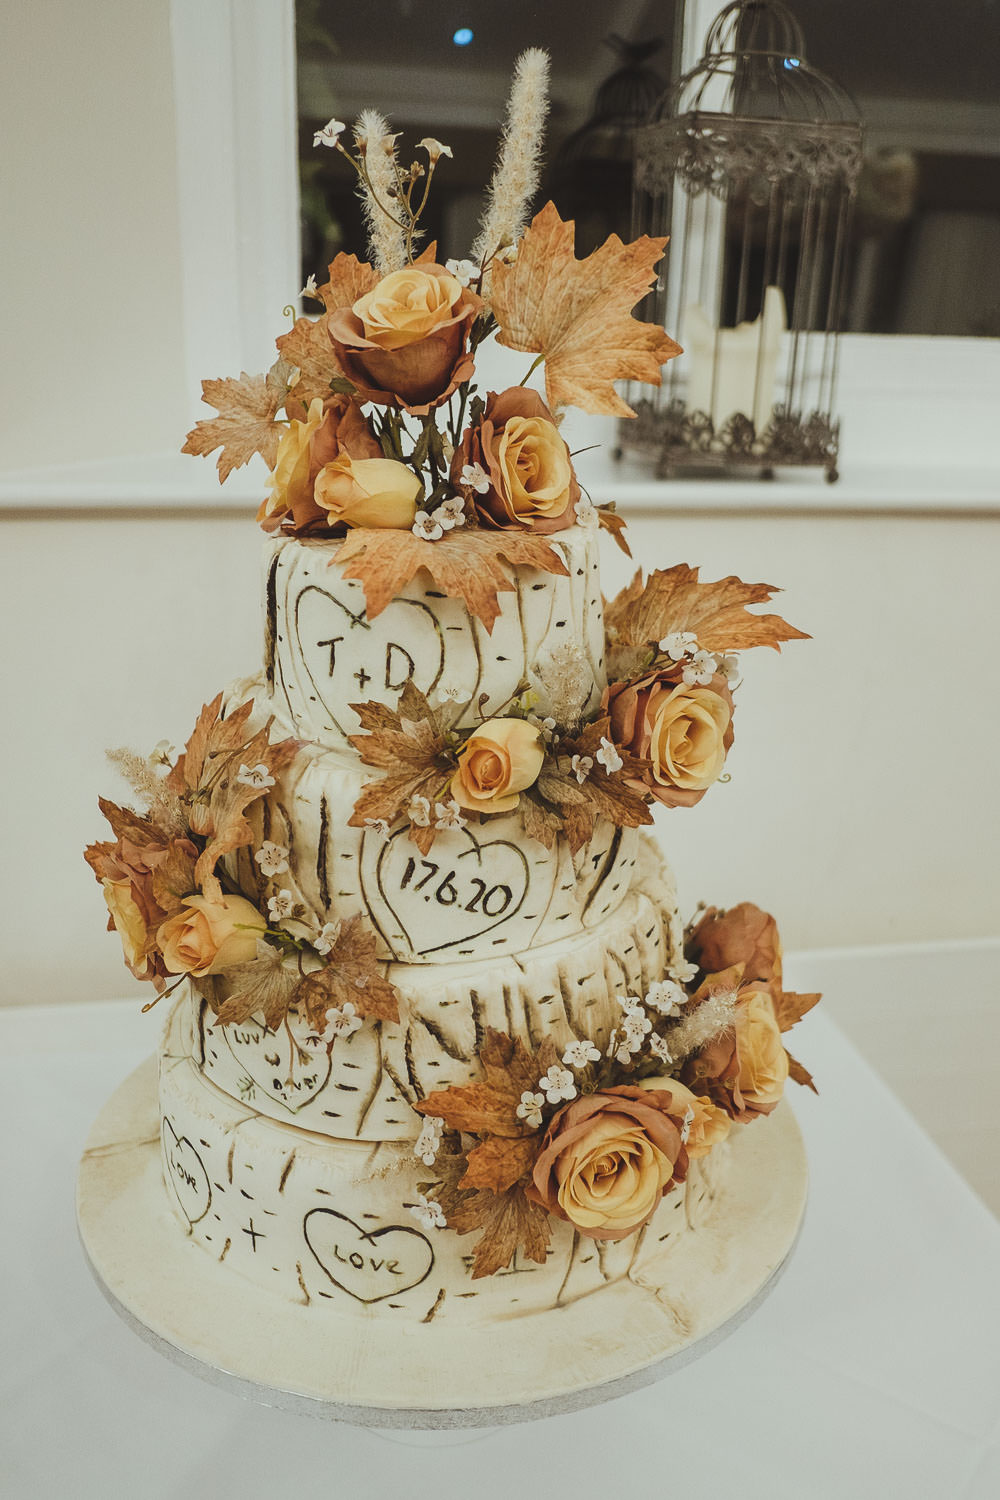 Autumnal themed wedding cake at Horton Grange